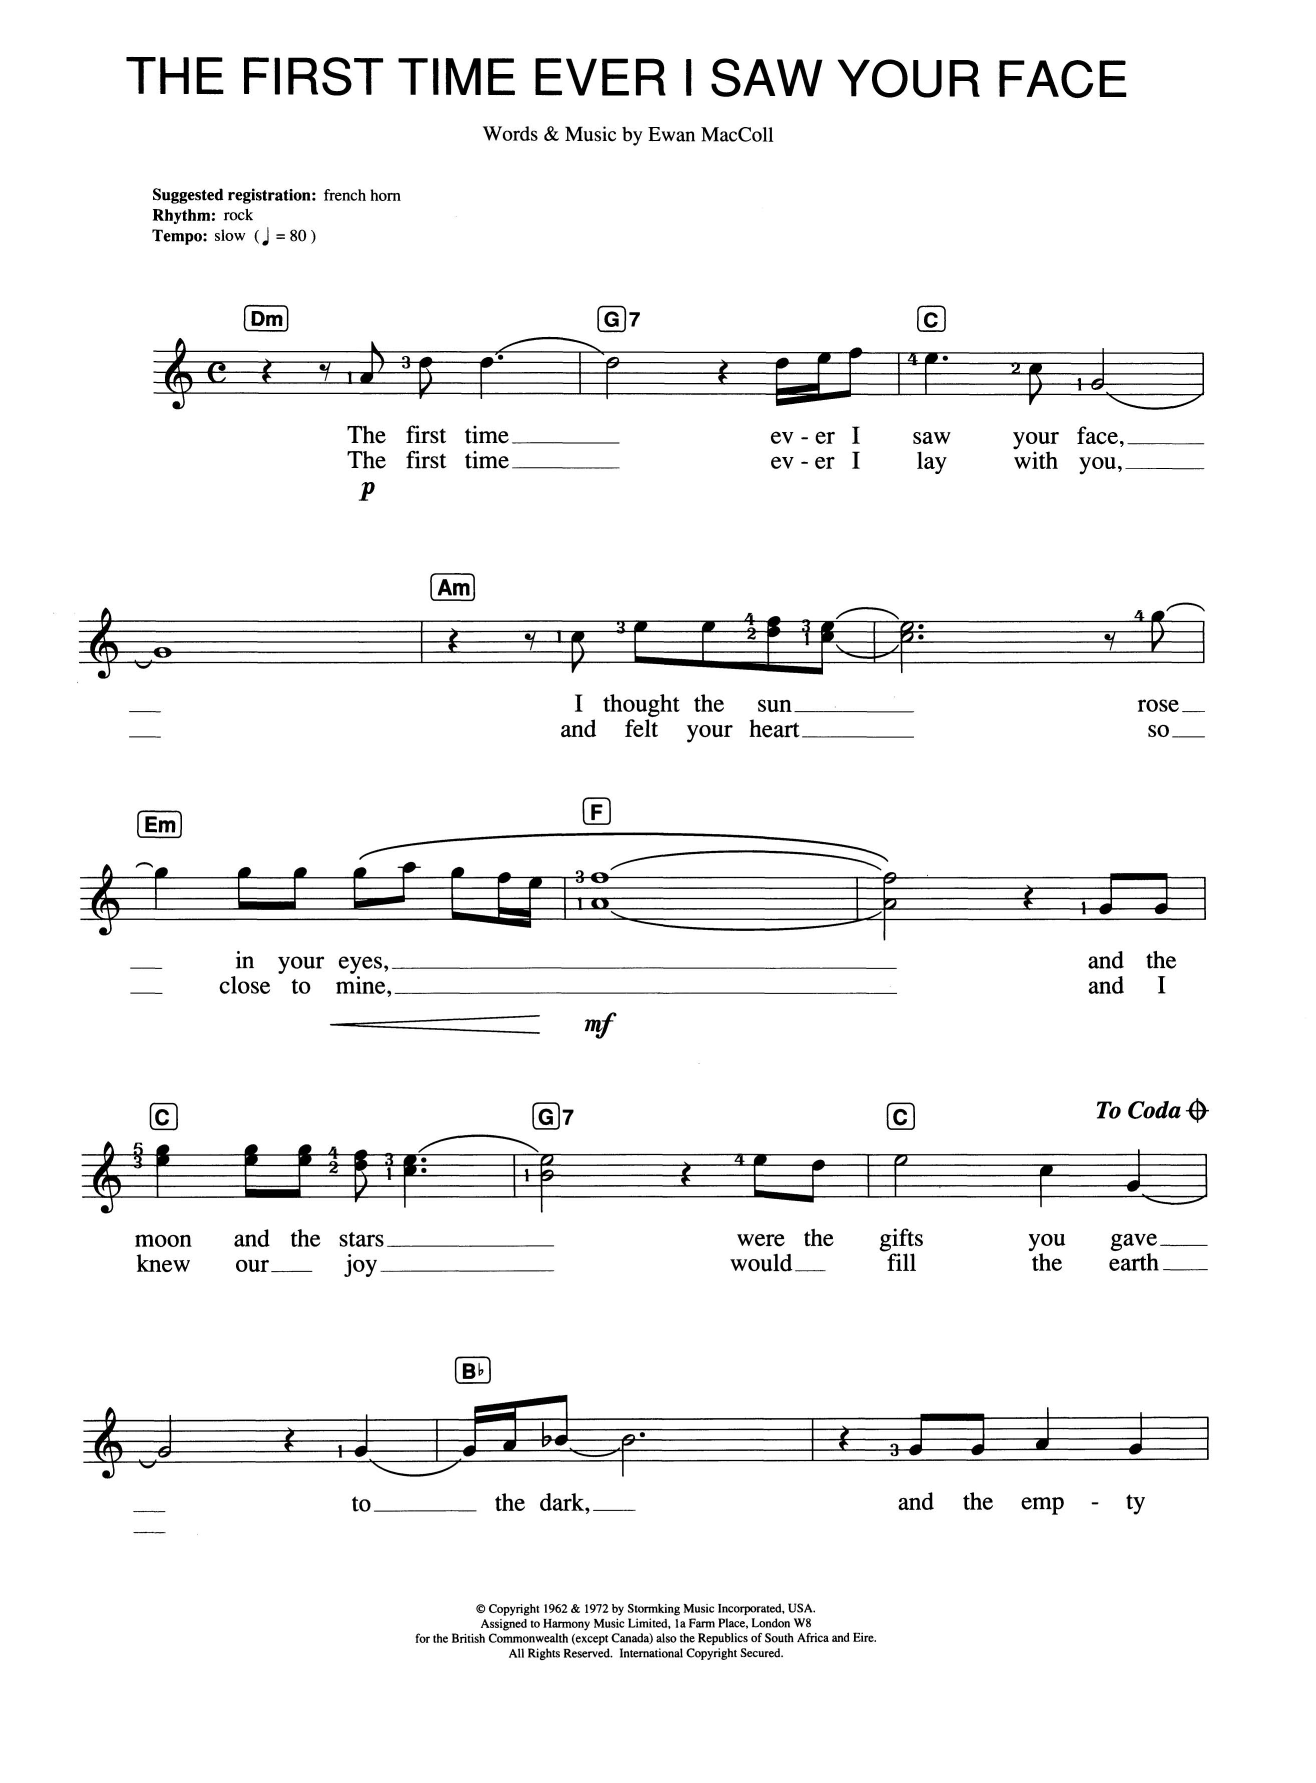 Sheet music digital files to print licensed ewan maccoll digital the first time ever i saw your face hexwebz Image collections